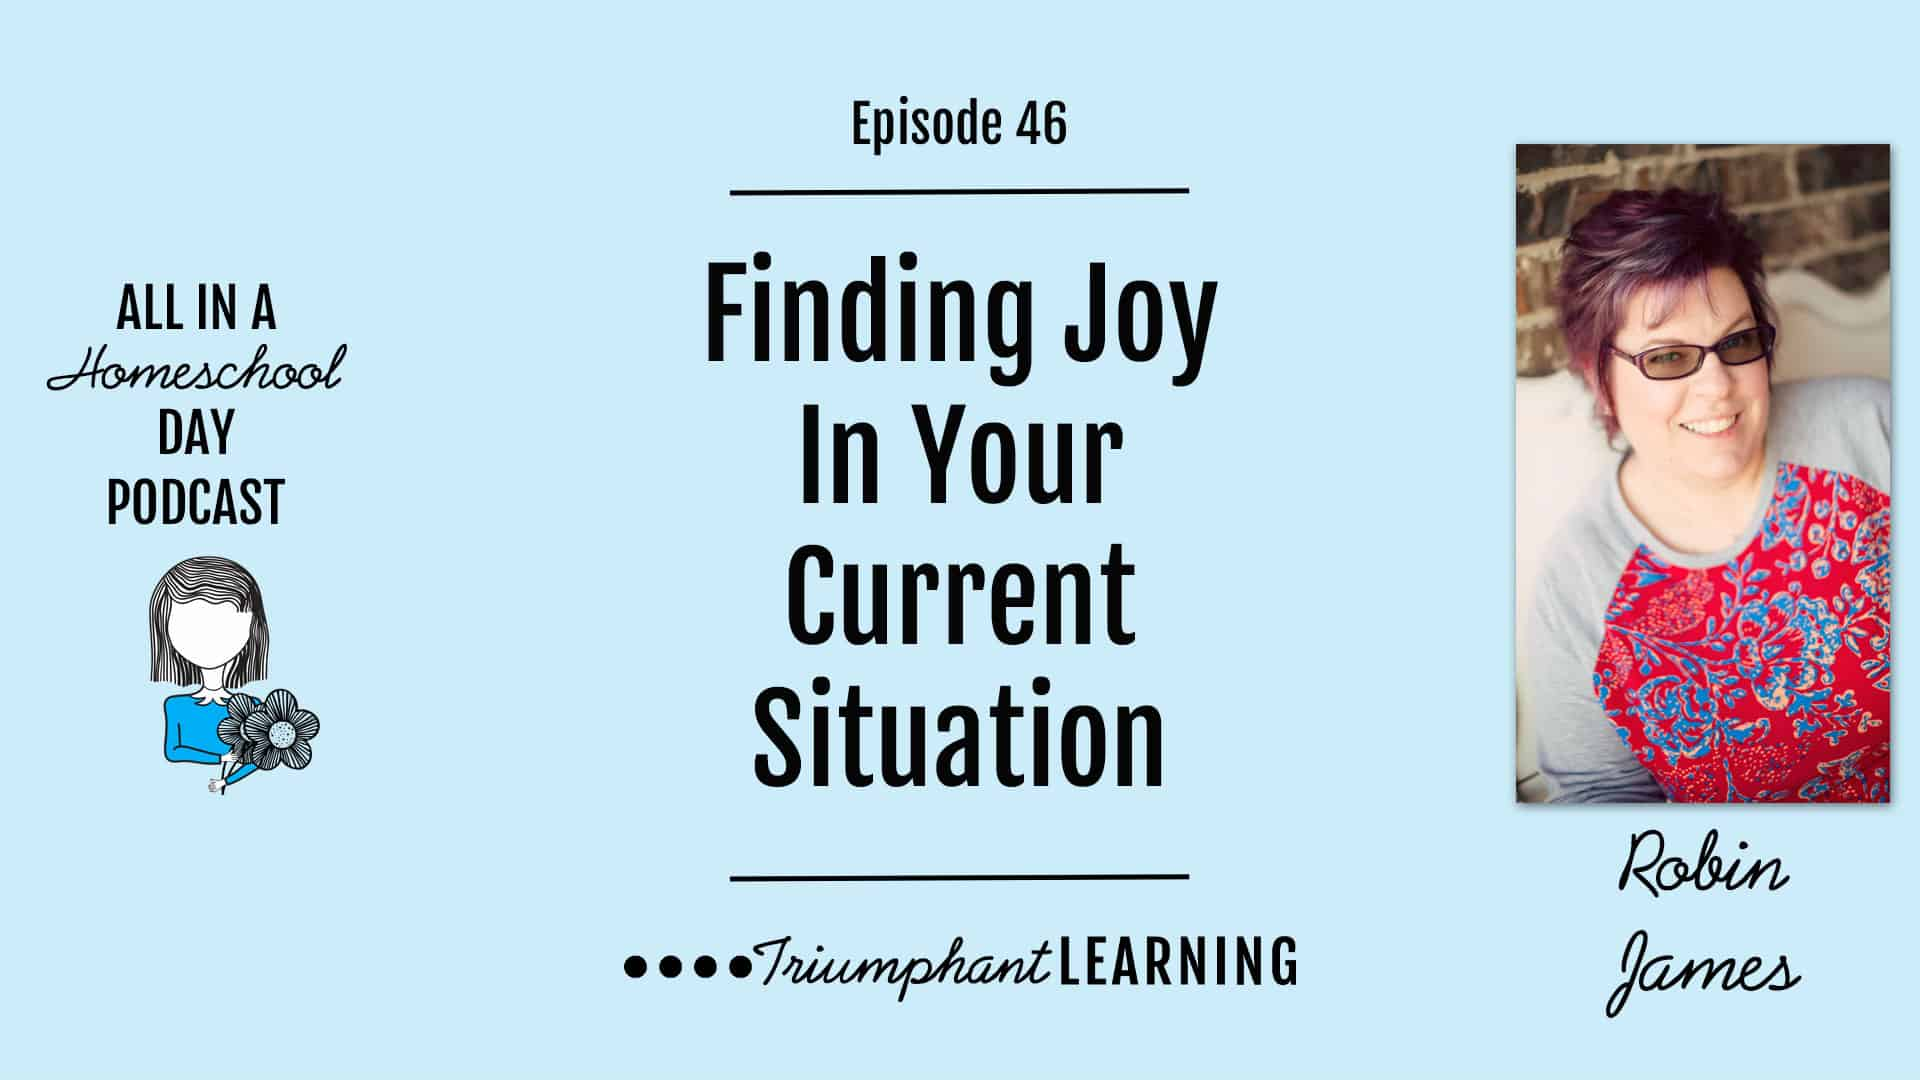 Sometimes it feels more like you are living in survival mode than thriving. Hear how Robin learned to find joy and peace during a challenging season. She shares tips for surviving and encouragement that good comes after the struggle.